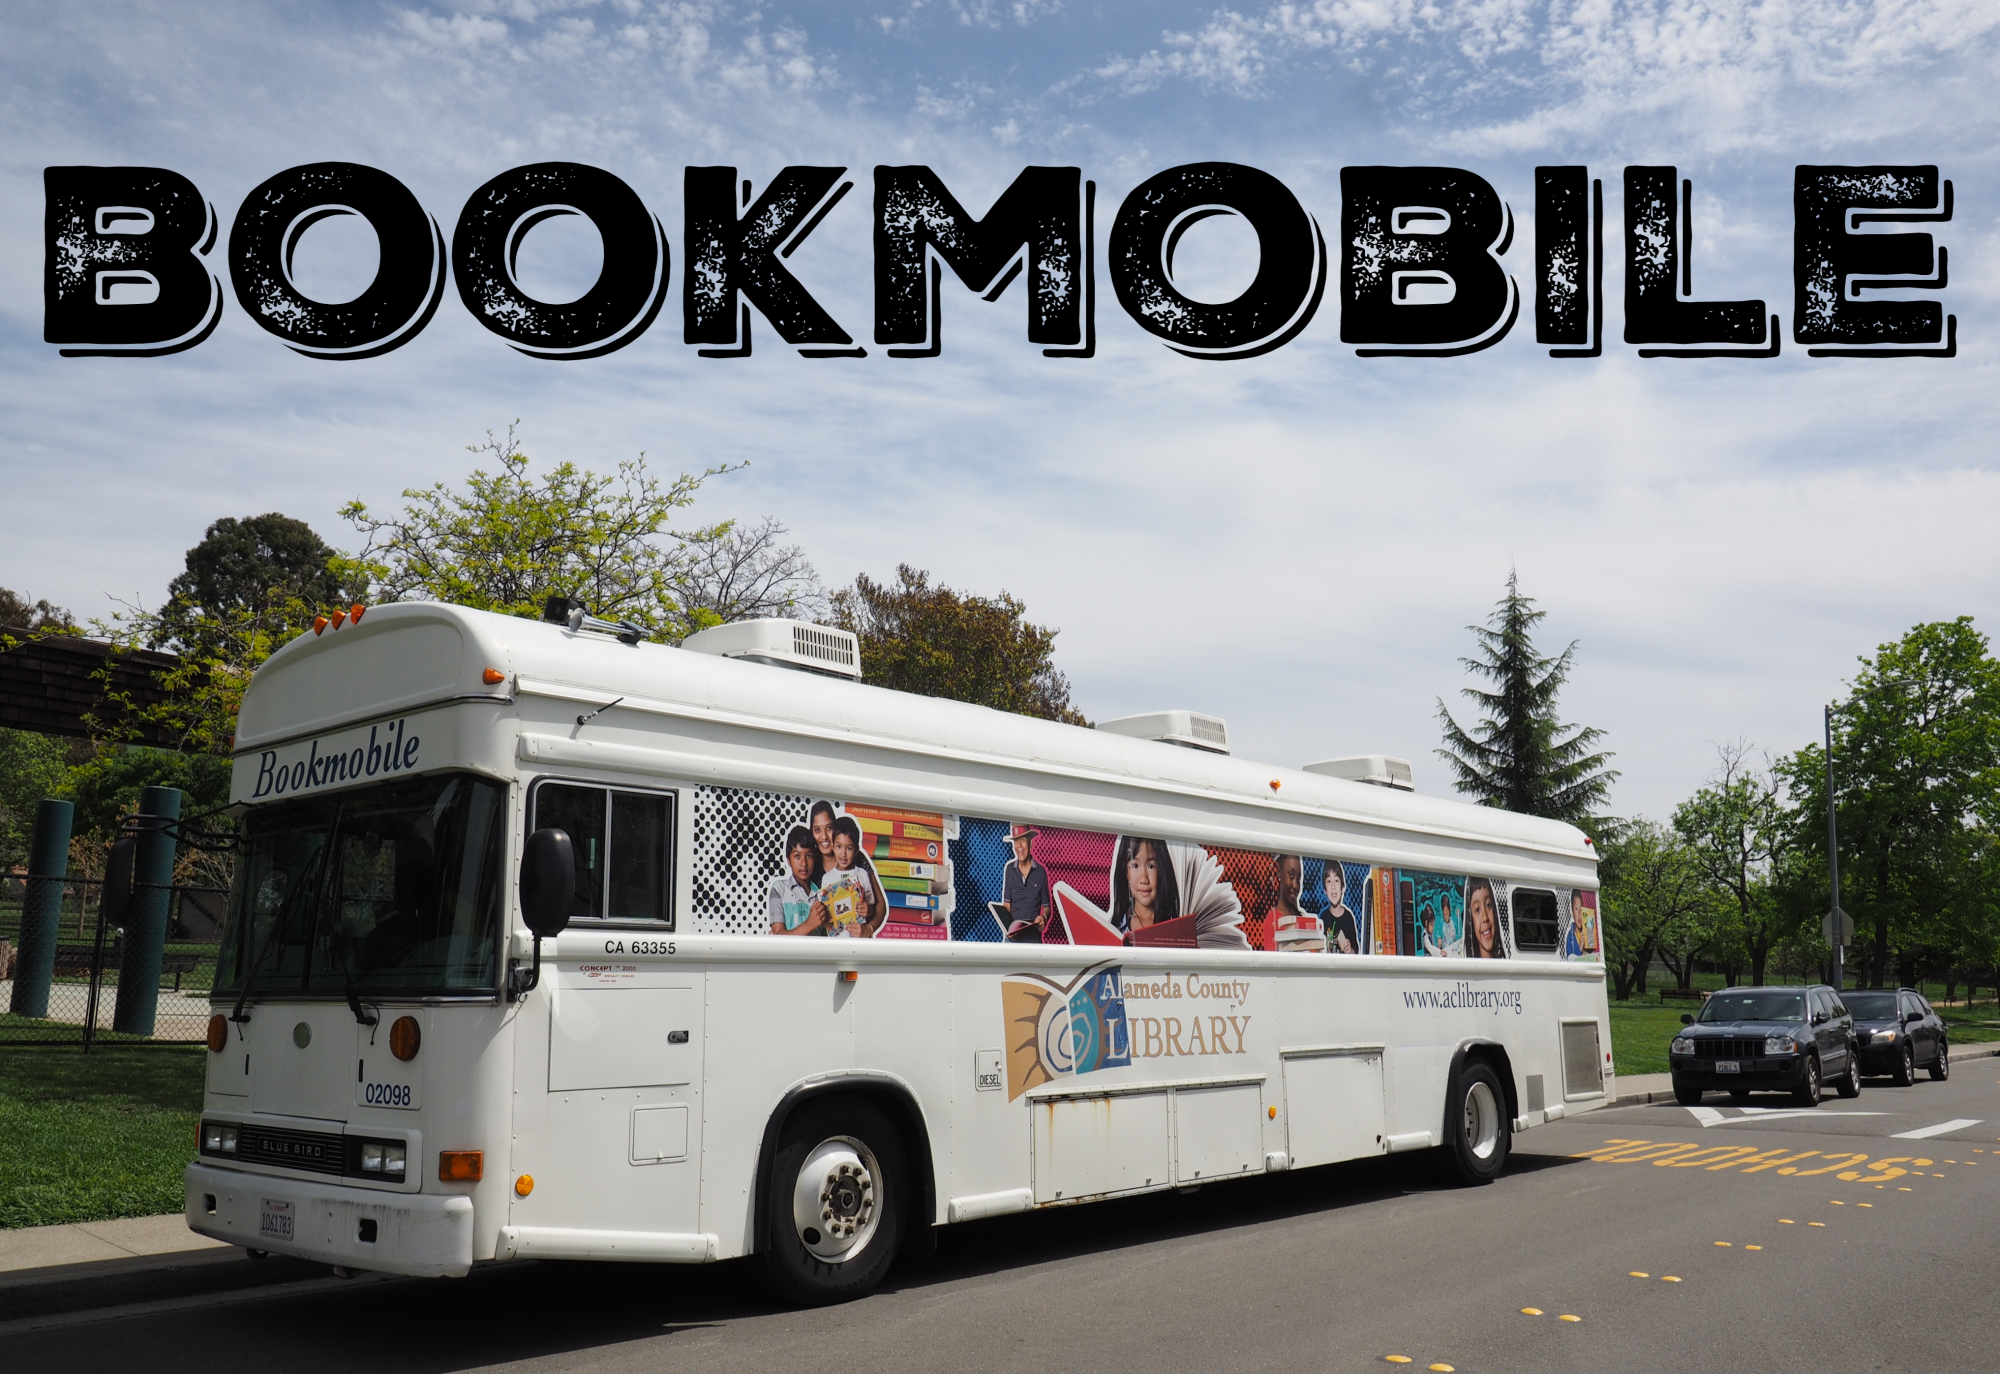 Pioneer School - bookmobile stop